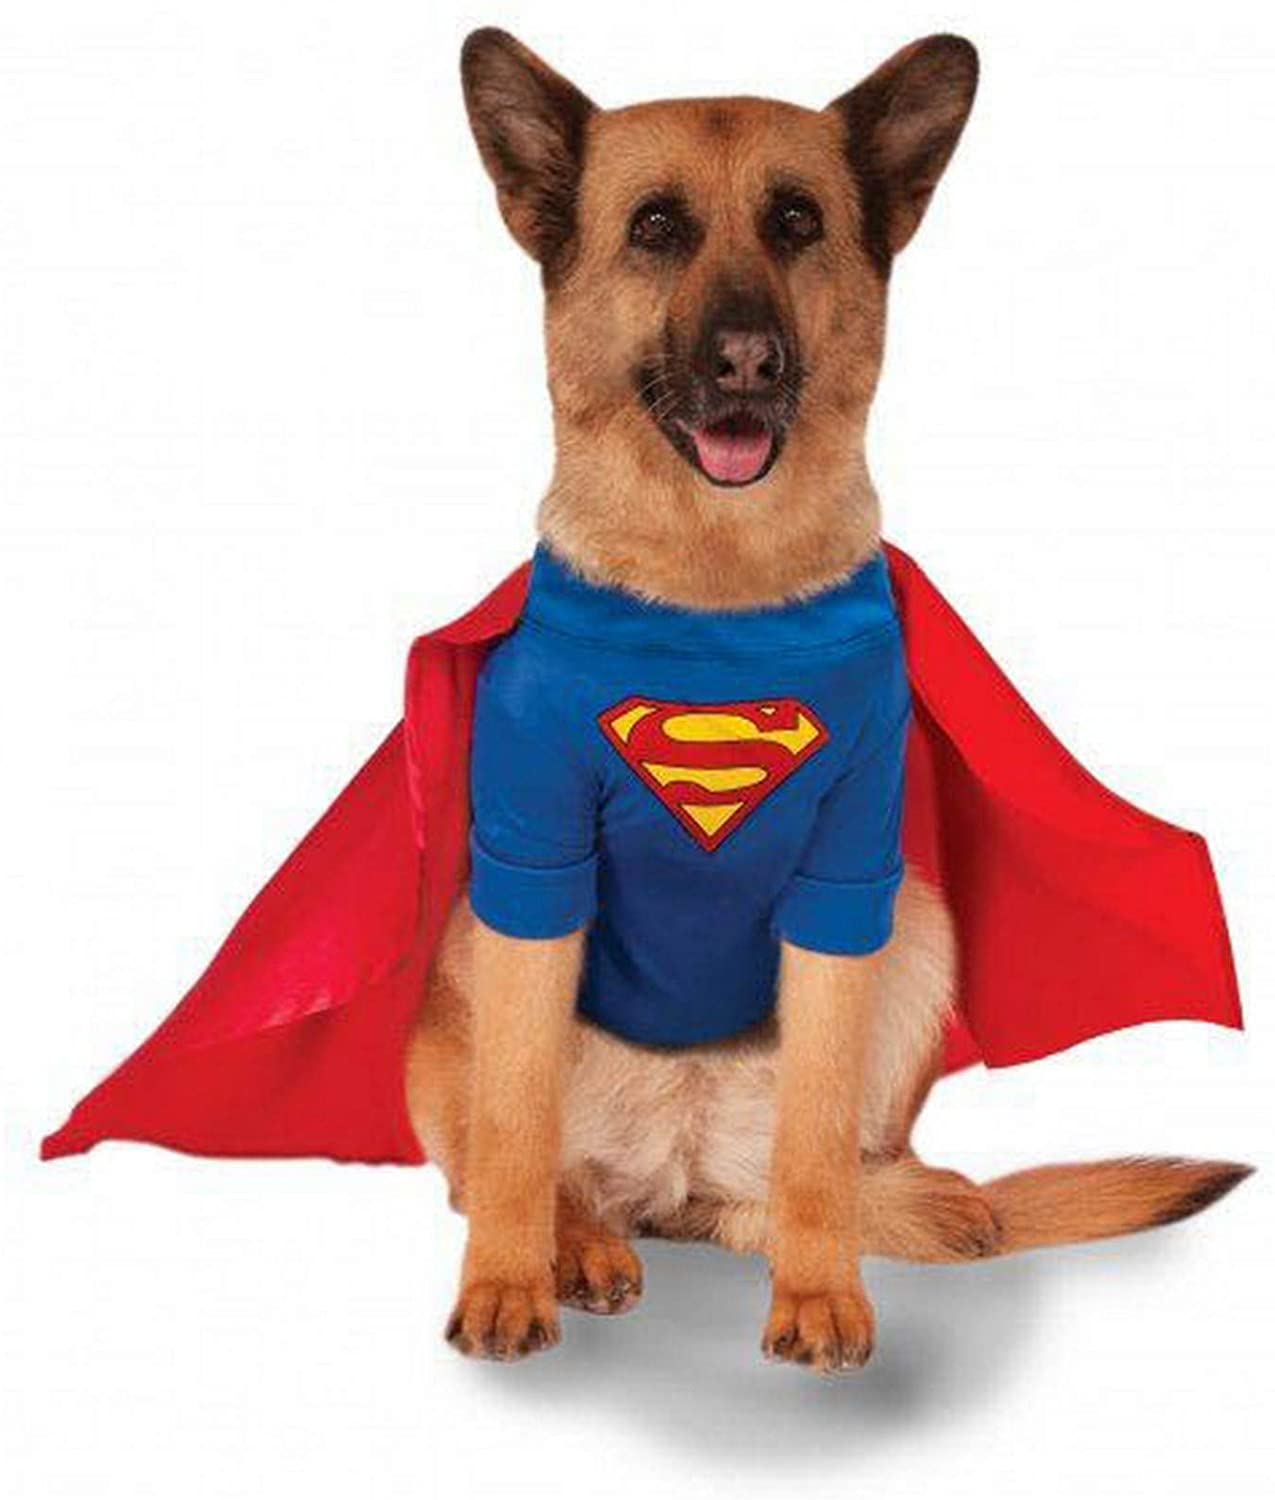 The Superman Dog Costume 6